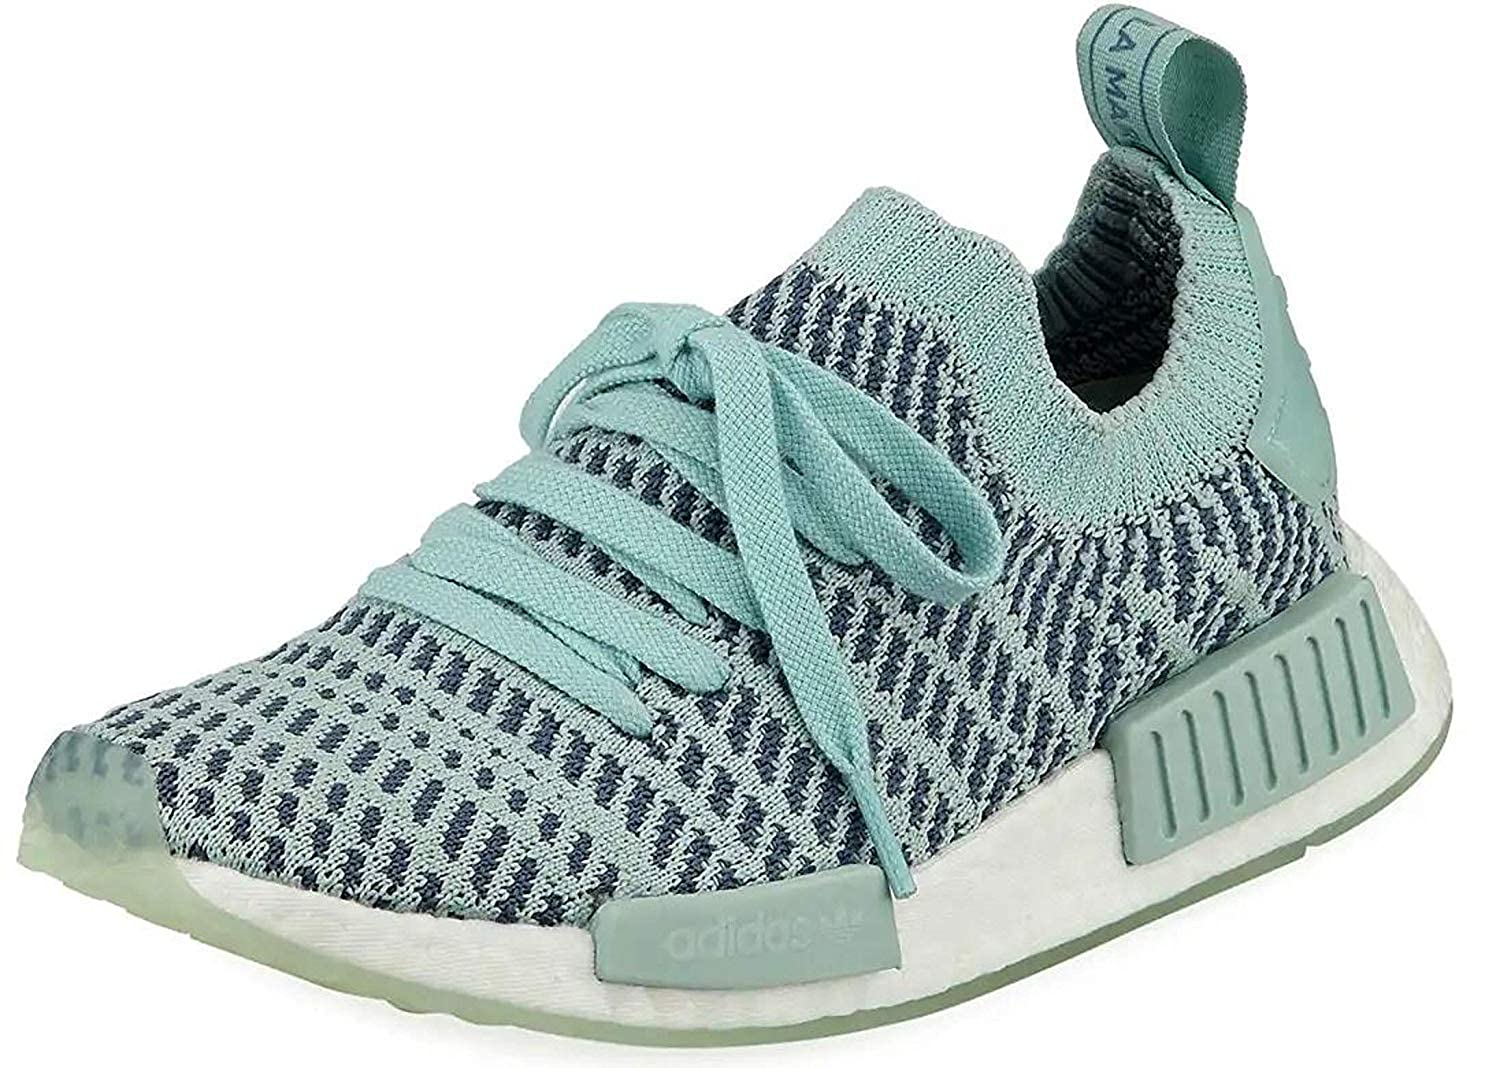 quality design 812c5 186bc adidas Originals NMD R1 STLT PK Running Shoes Grey/White (11 B(M) US)